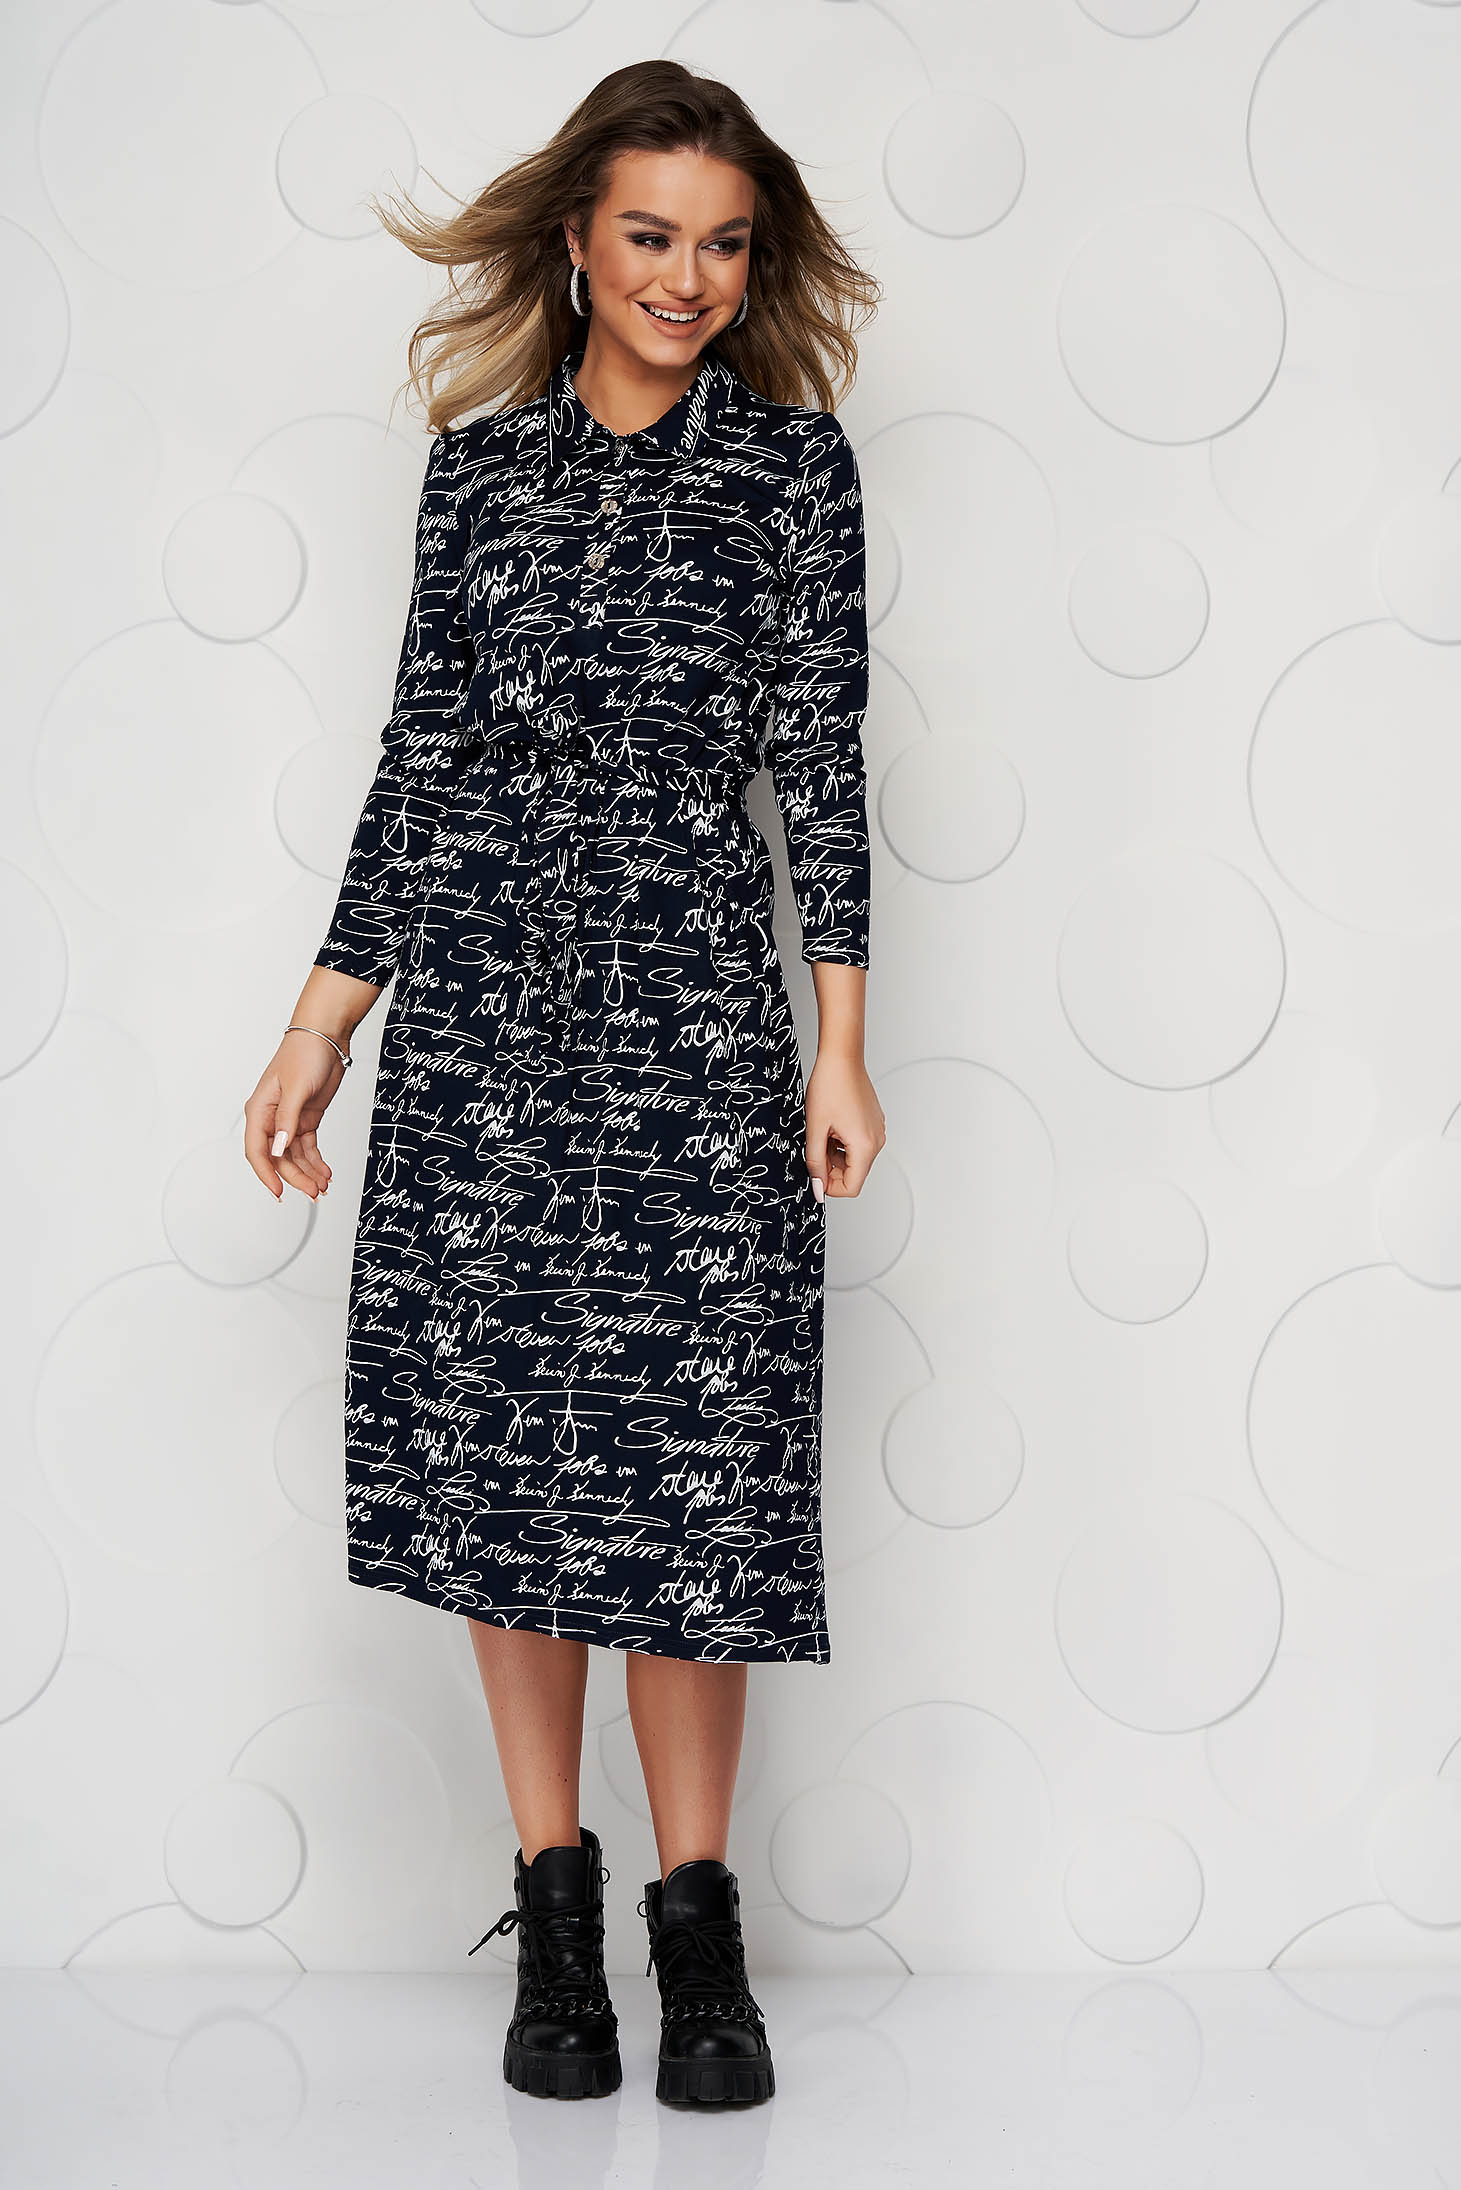 StarShinerS darkblue dress with graphic details accessorized with tied waistband from elastic fabric